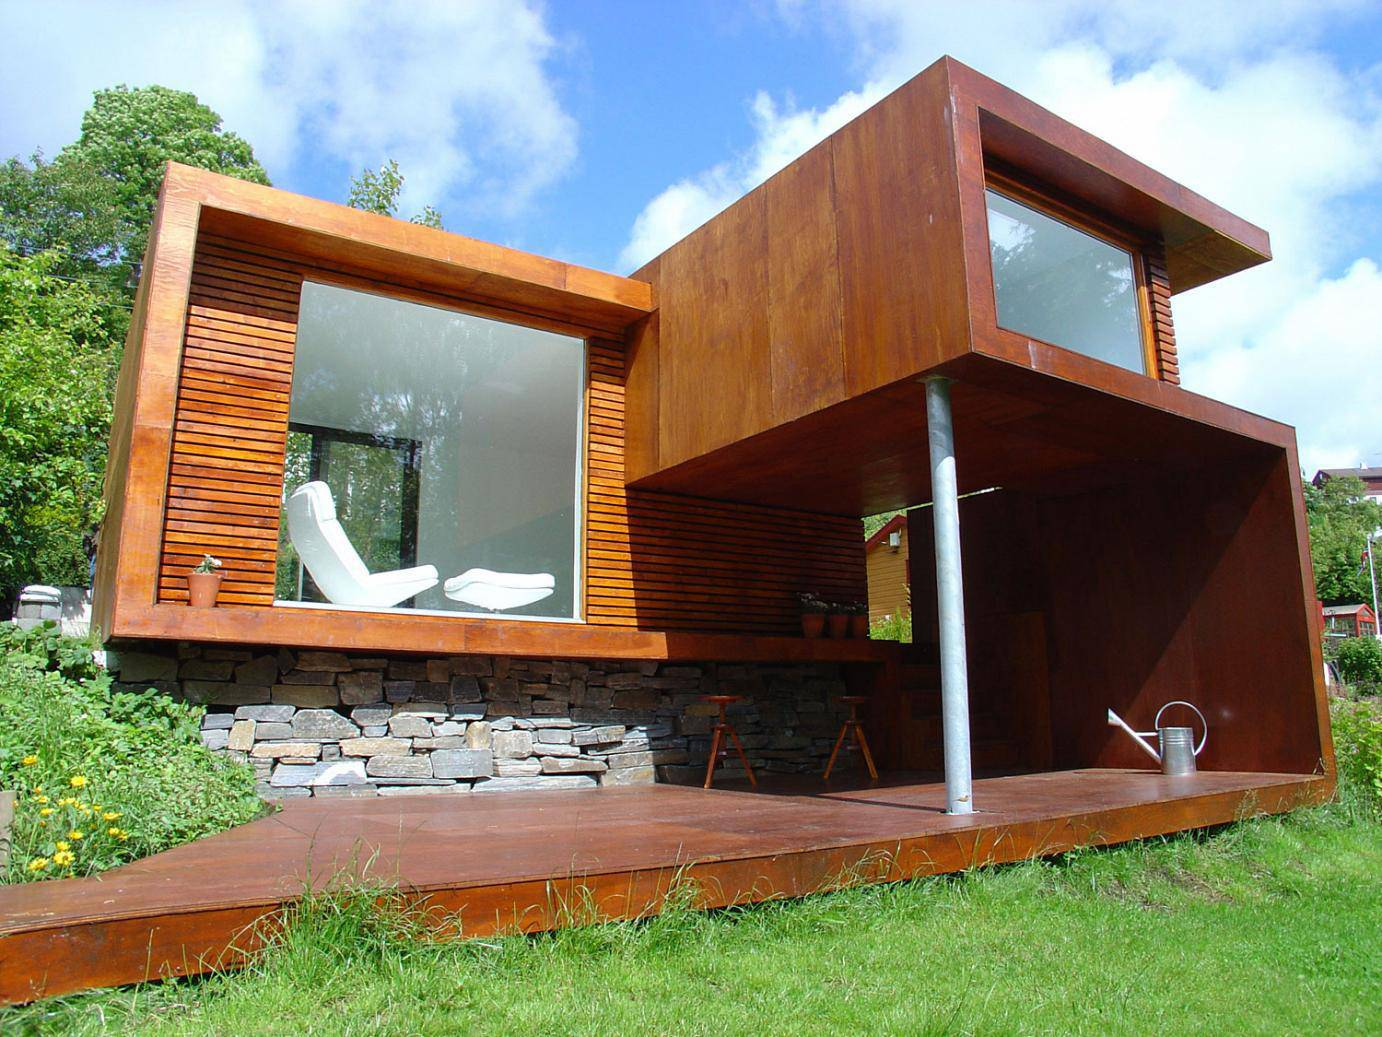 40 modelos de casas de madeira dicas essenciais for Small house design made of wood